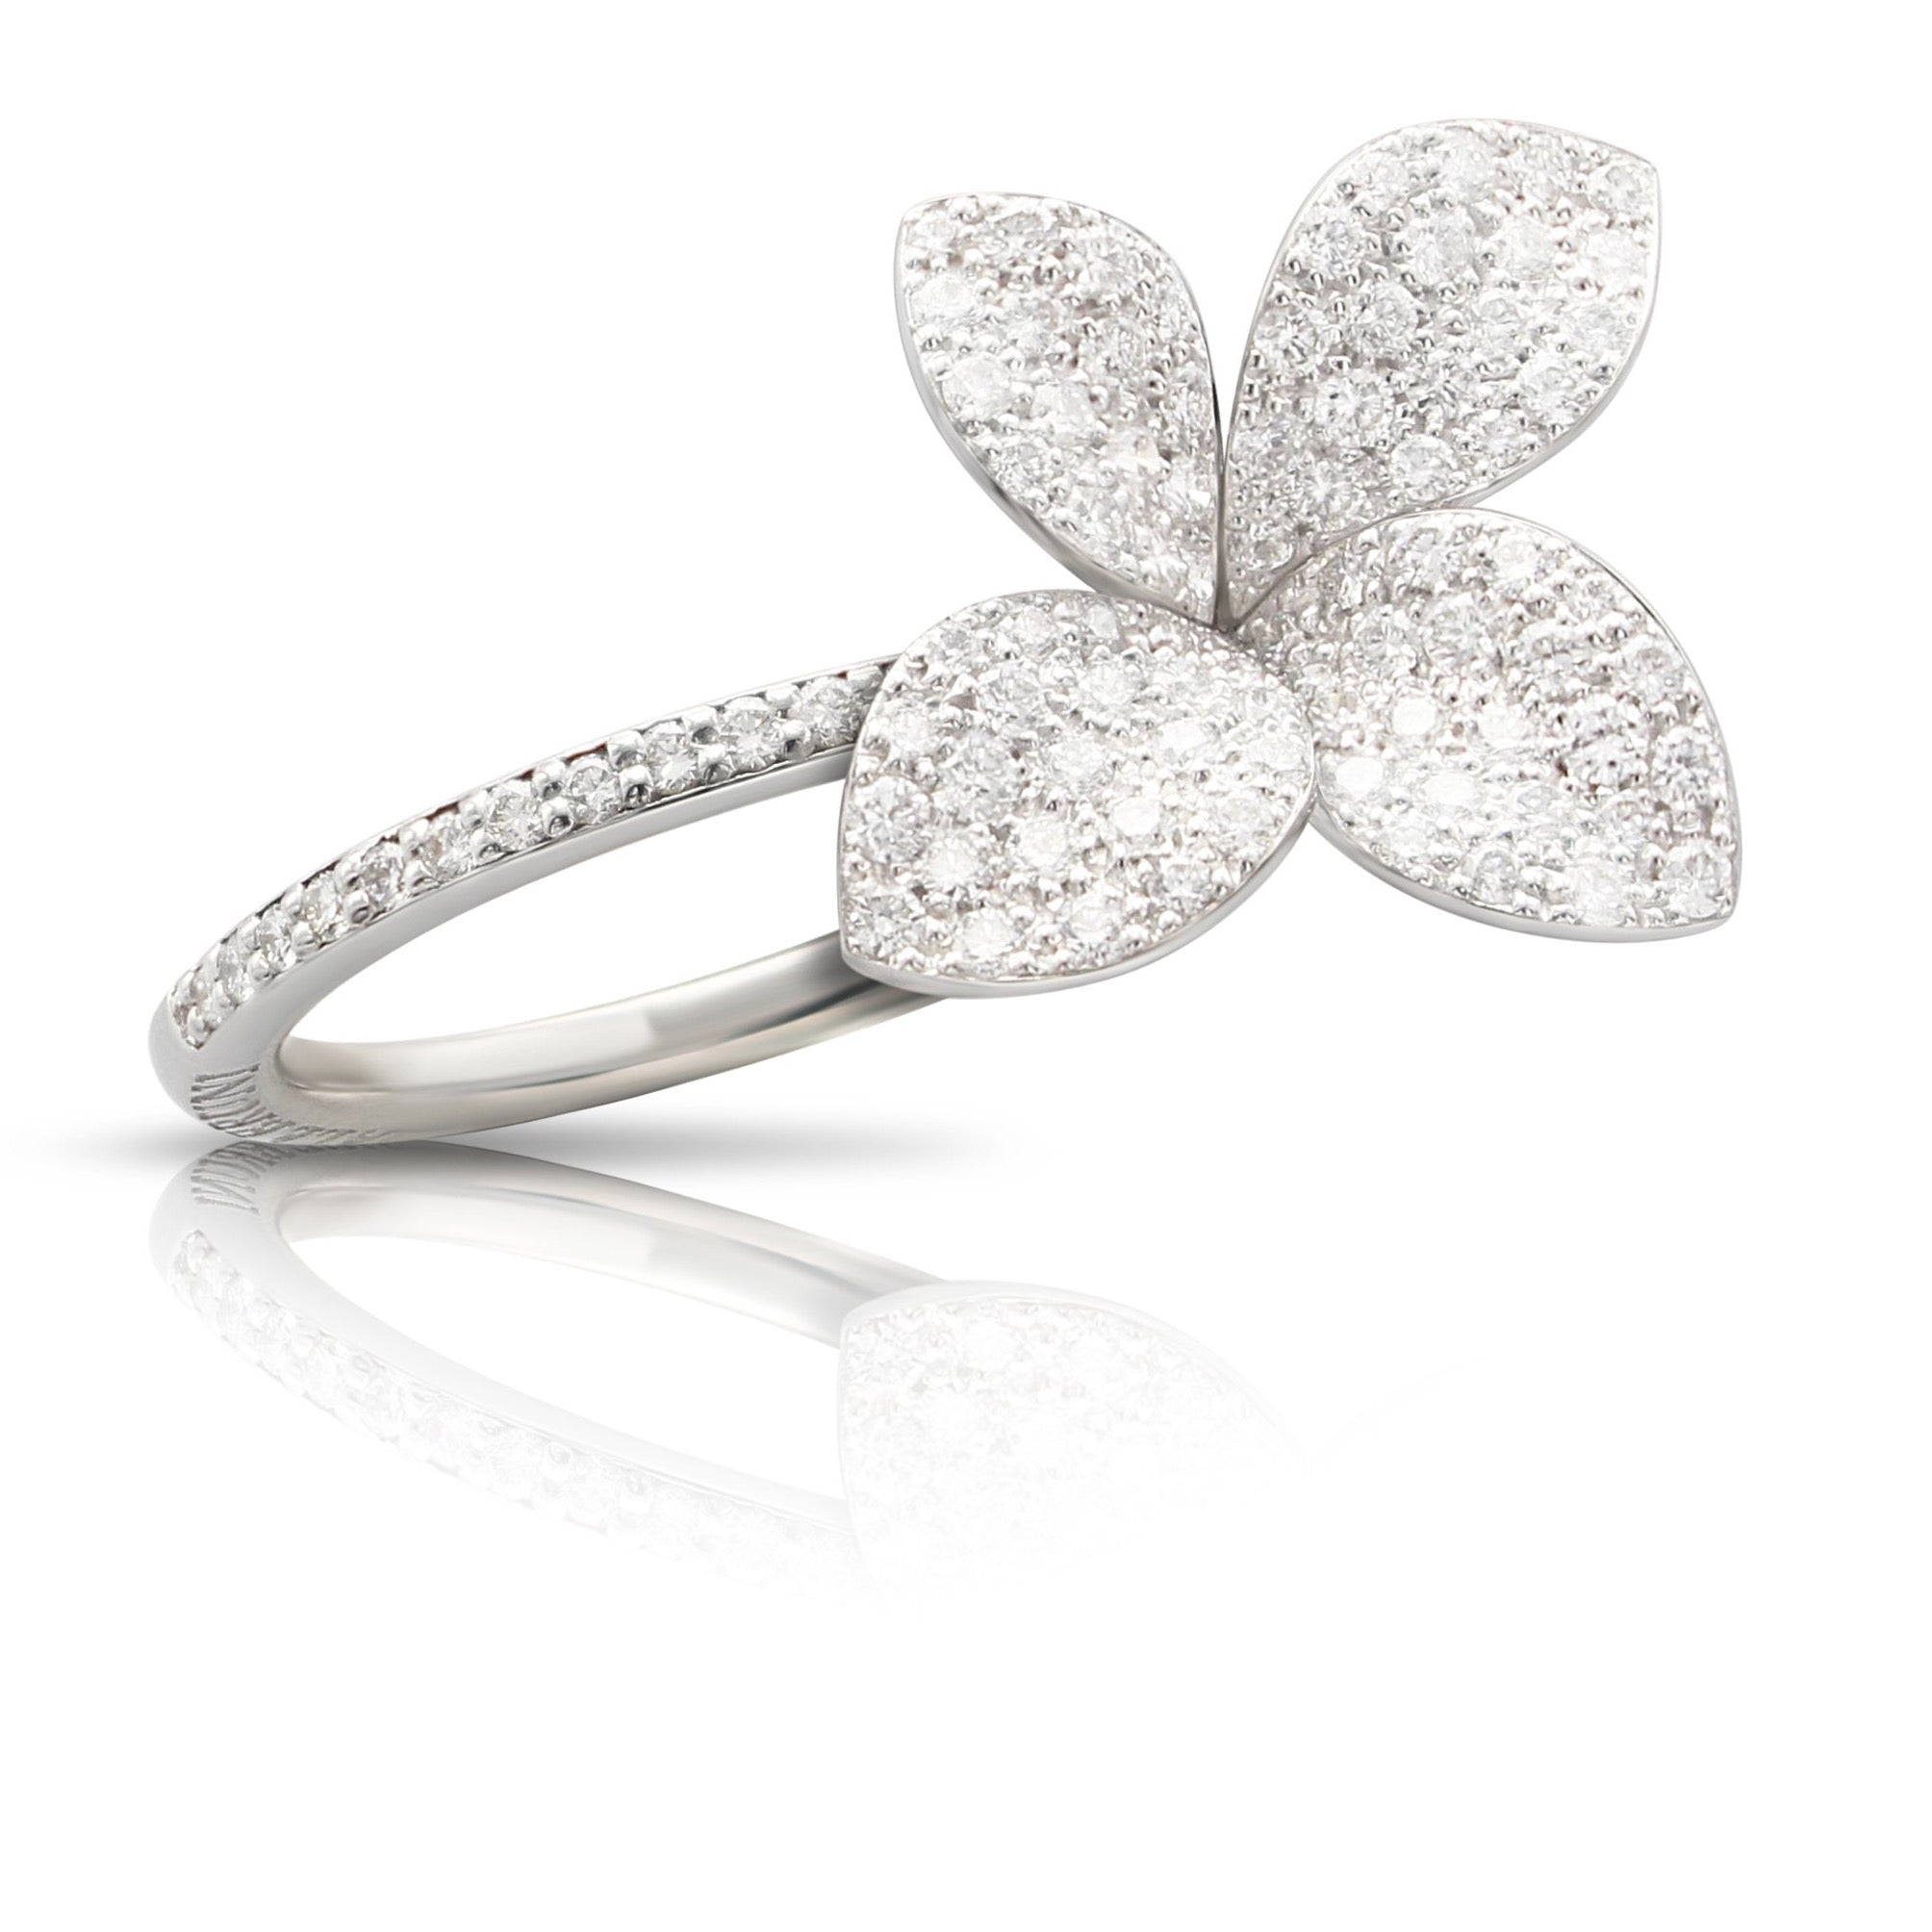 Pasquale Bruni Giardini Segreti Petit Ring, 18k White Gold with Diamonds